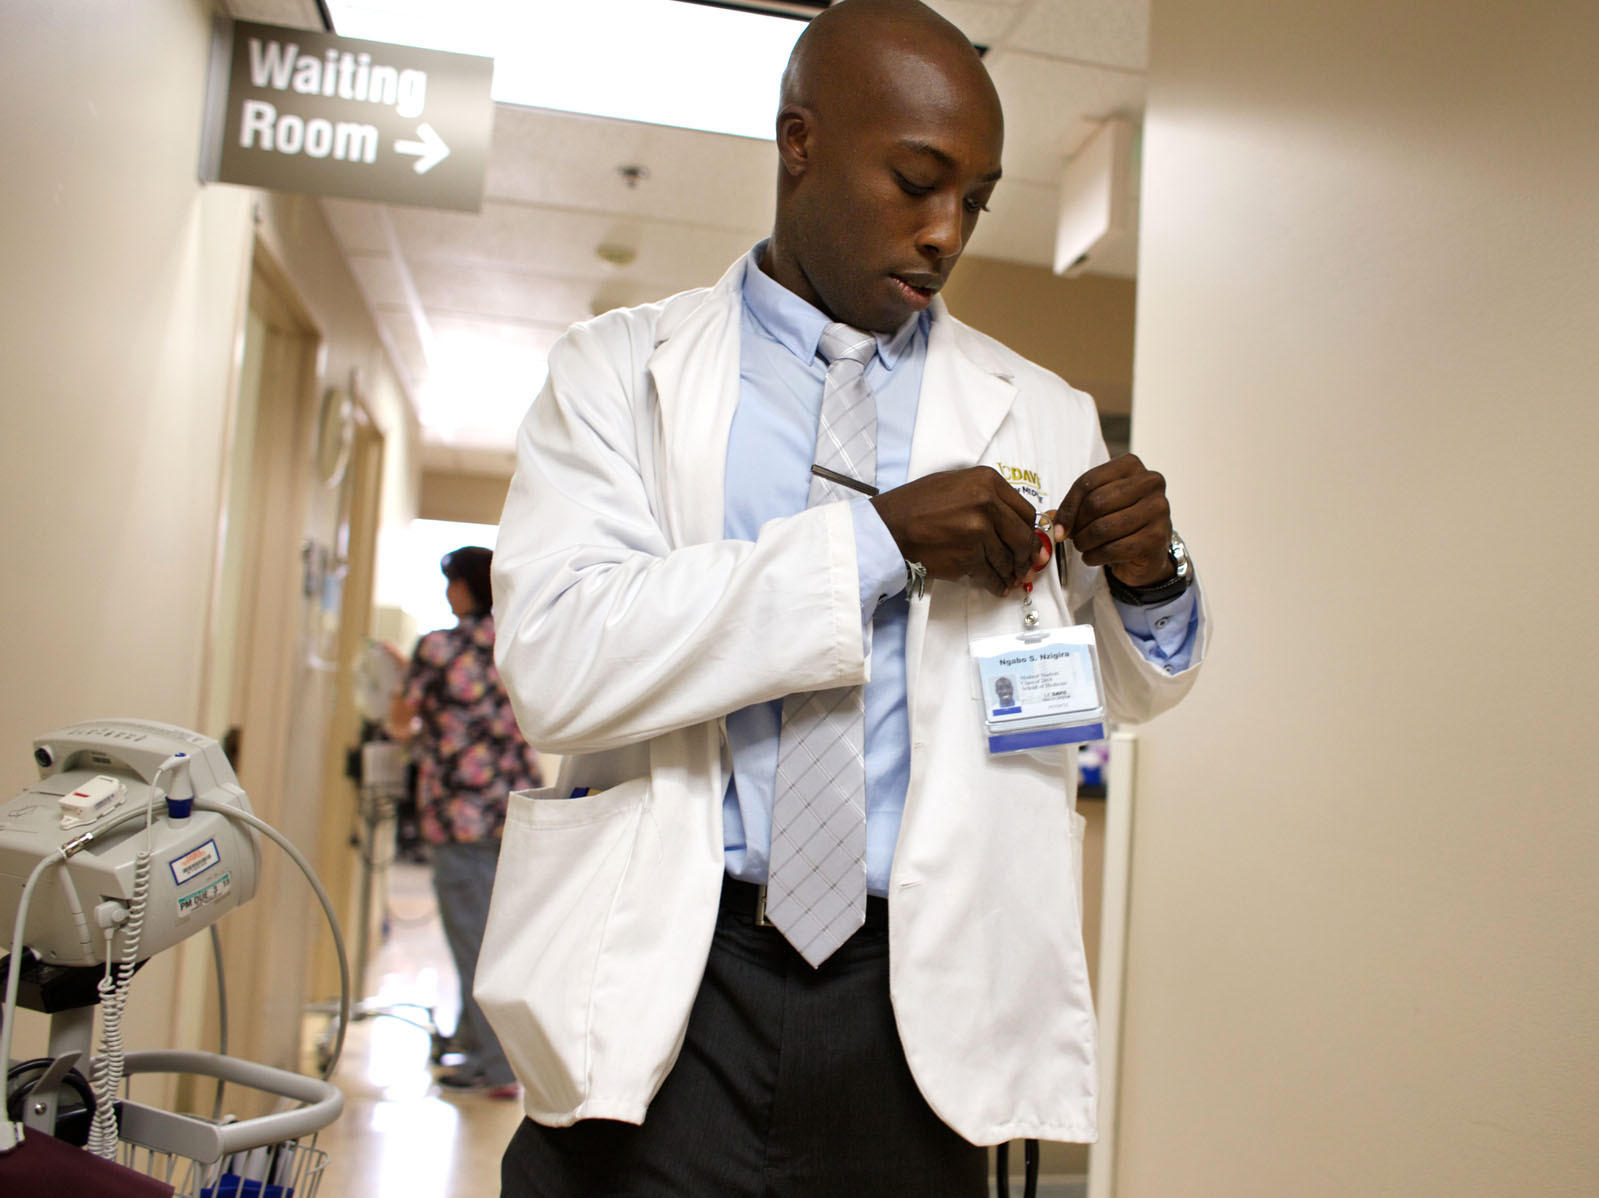 California Experiments With Fast-Tracking Medical School